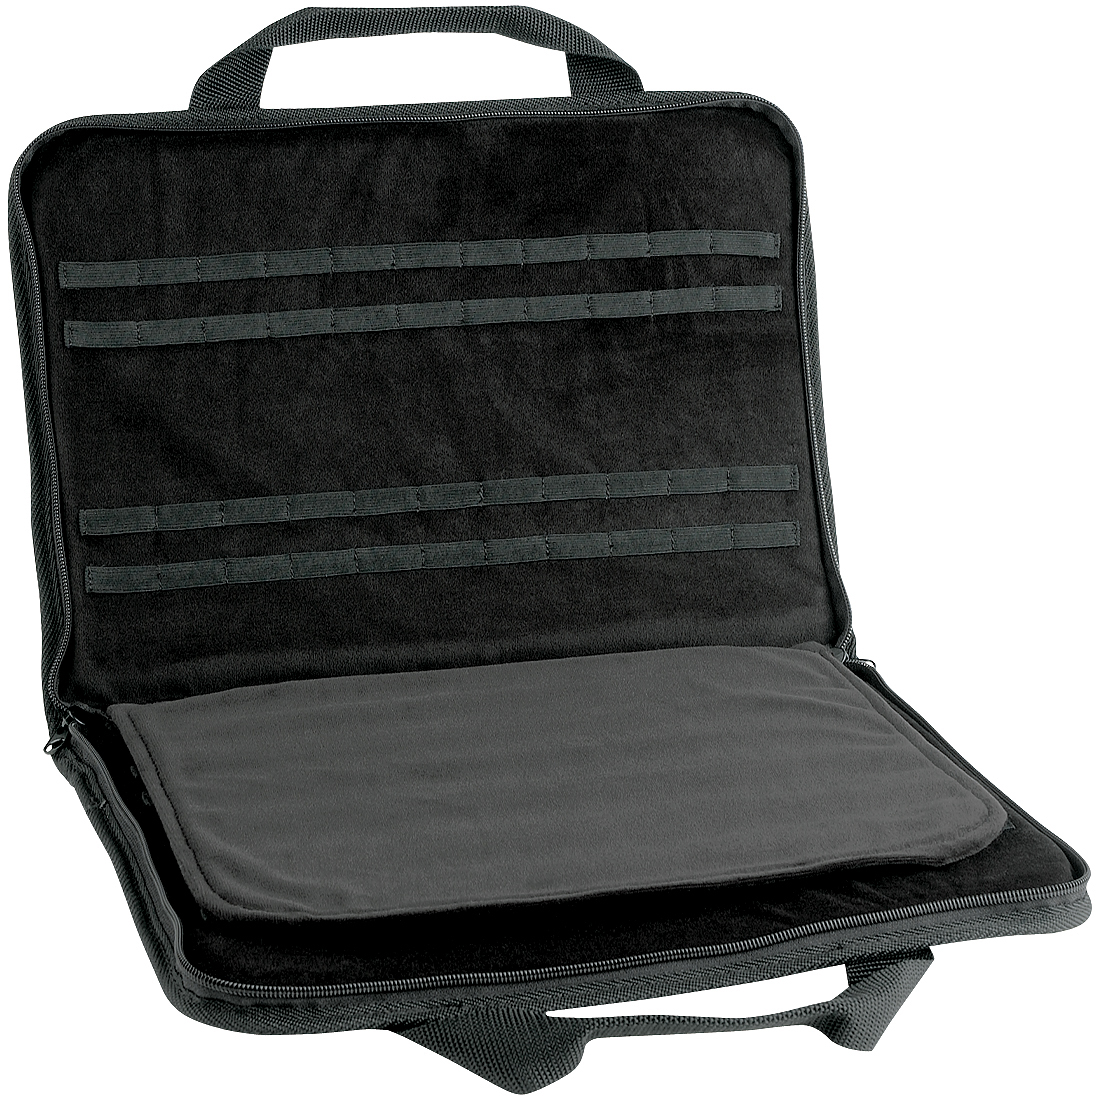 01075 - CASE Leather Carrying - Medium (Holds 42 Knives)